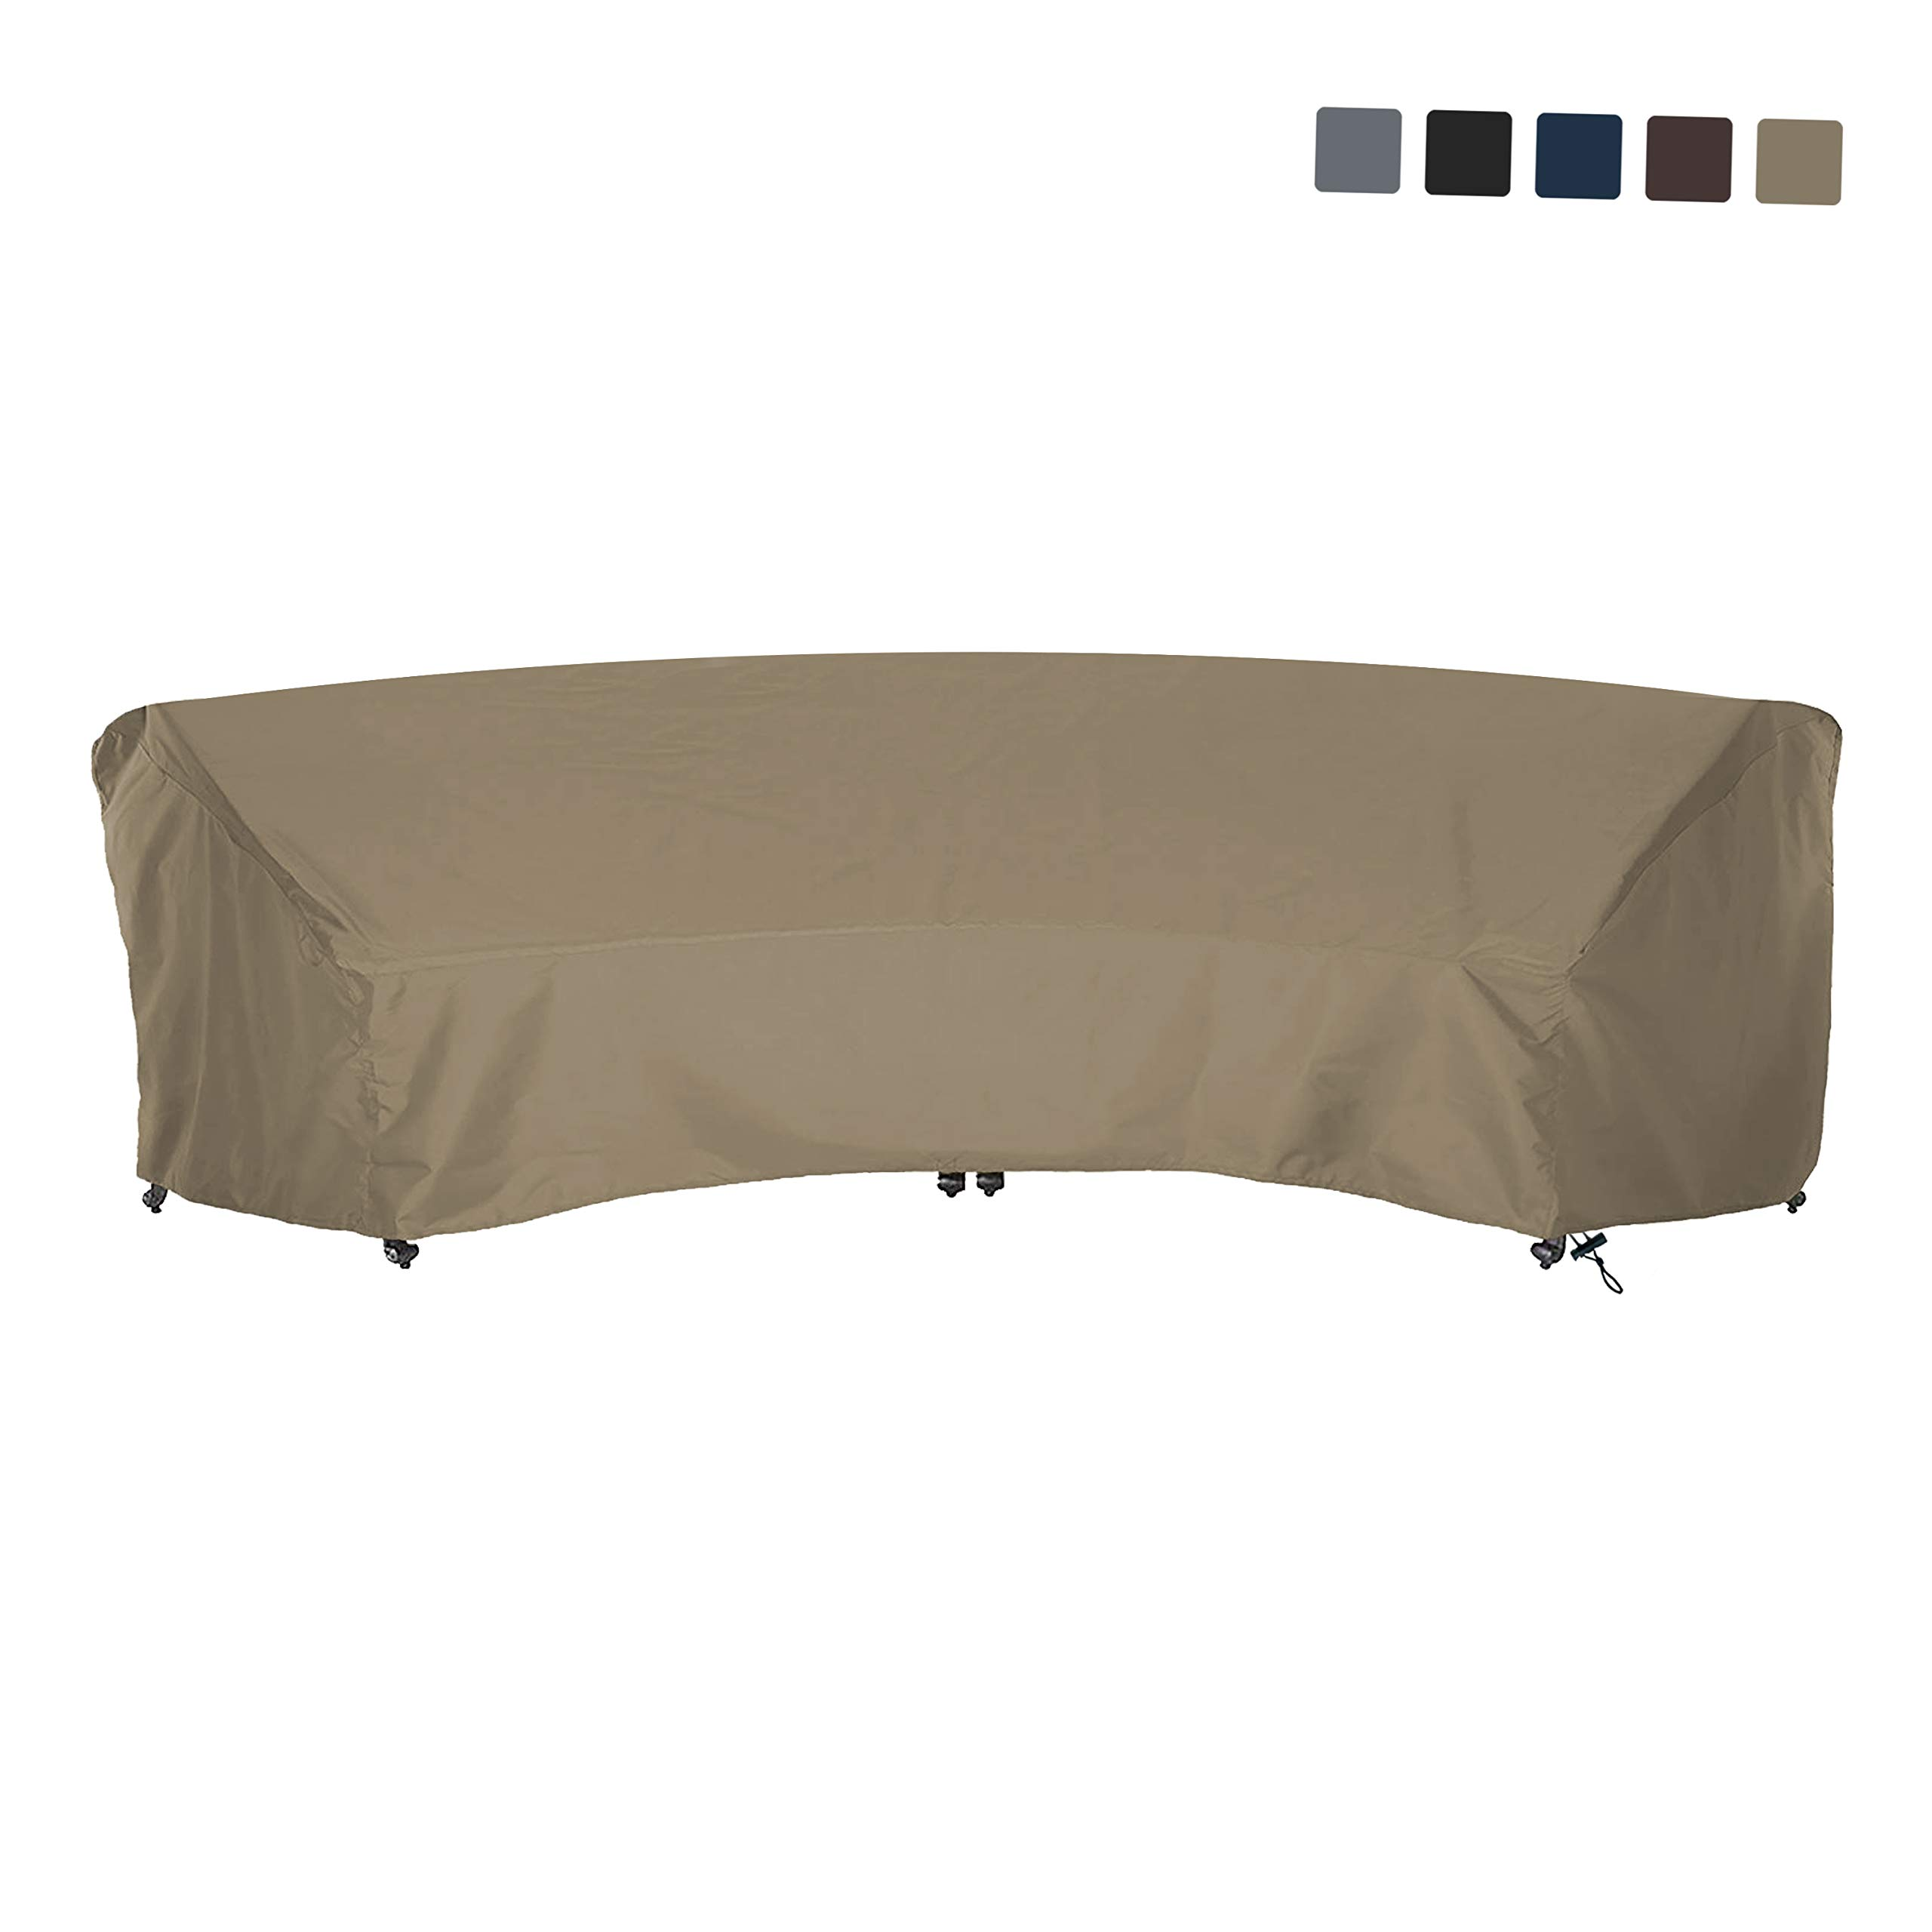 COVERS & ALL Curved Sofa Cover 12 Oz Waterproof - 100% UV & Weather Resistant Customize Outdoor Sofa Cover with Air Pockets and Drawstring with Snug Fit (120 L x 36 W x 38 H x 82 FL, Beige)